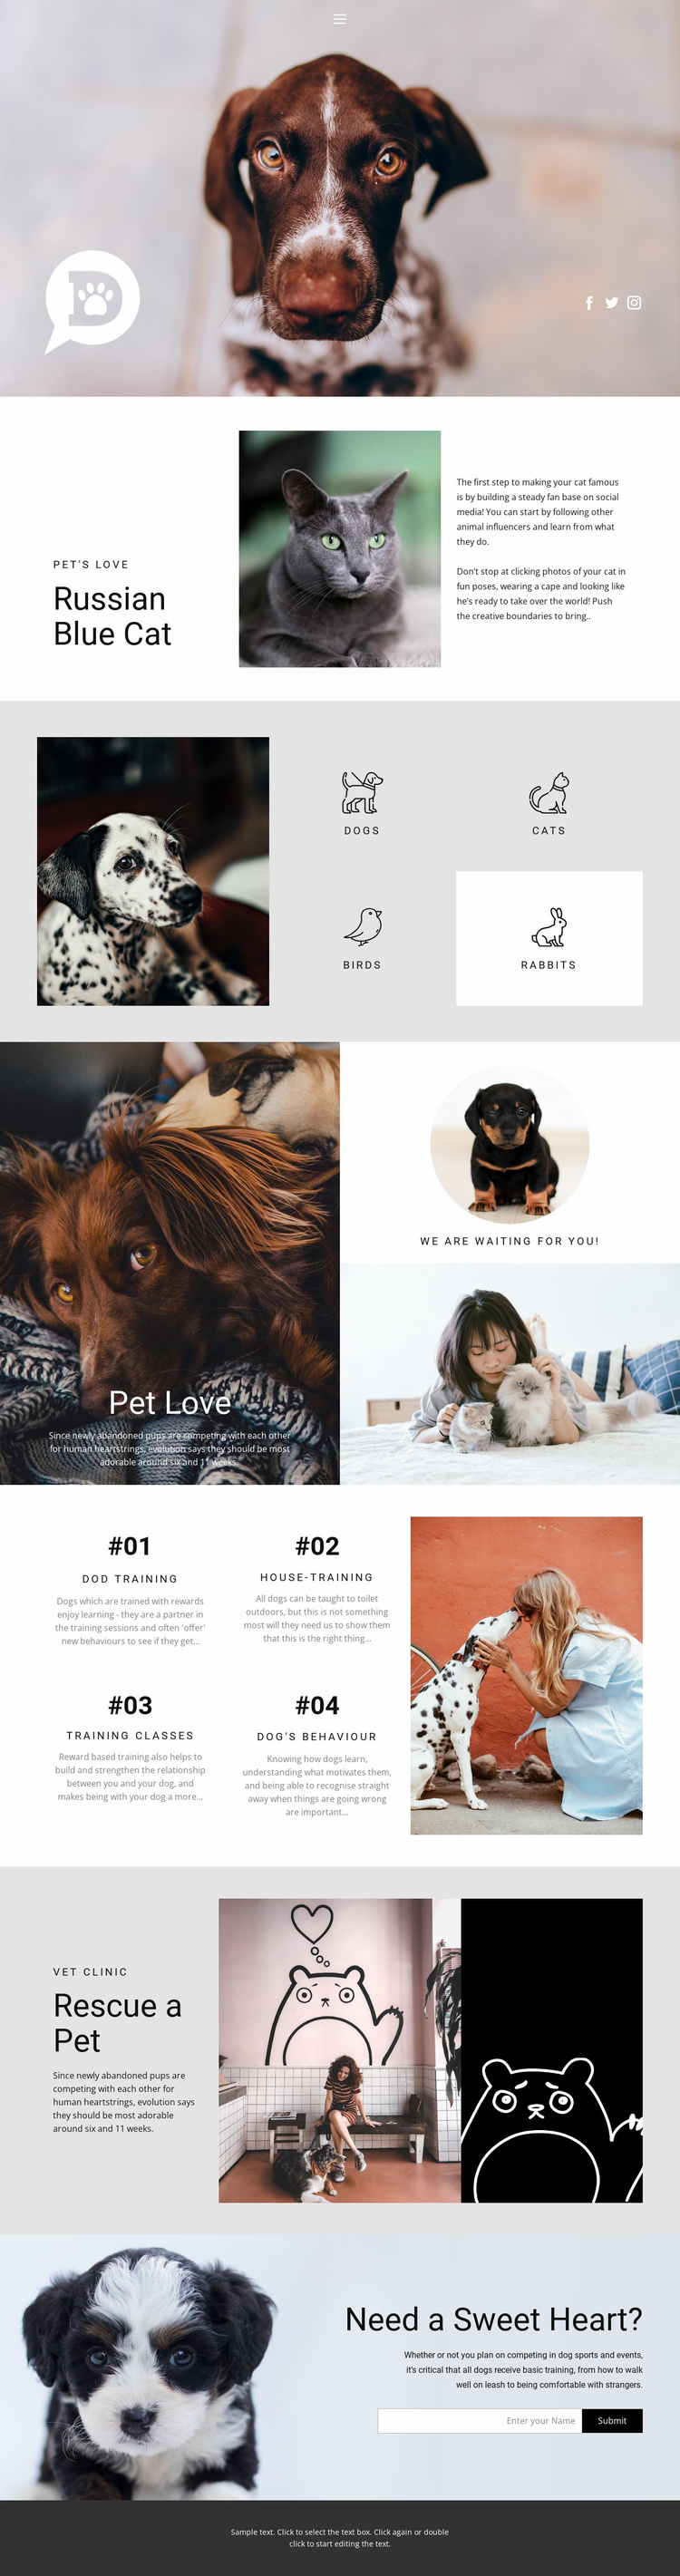 Care for pets and animals Website Template